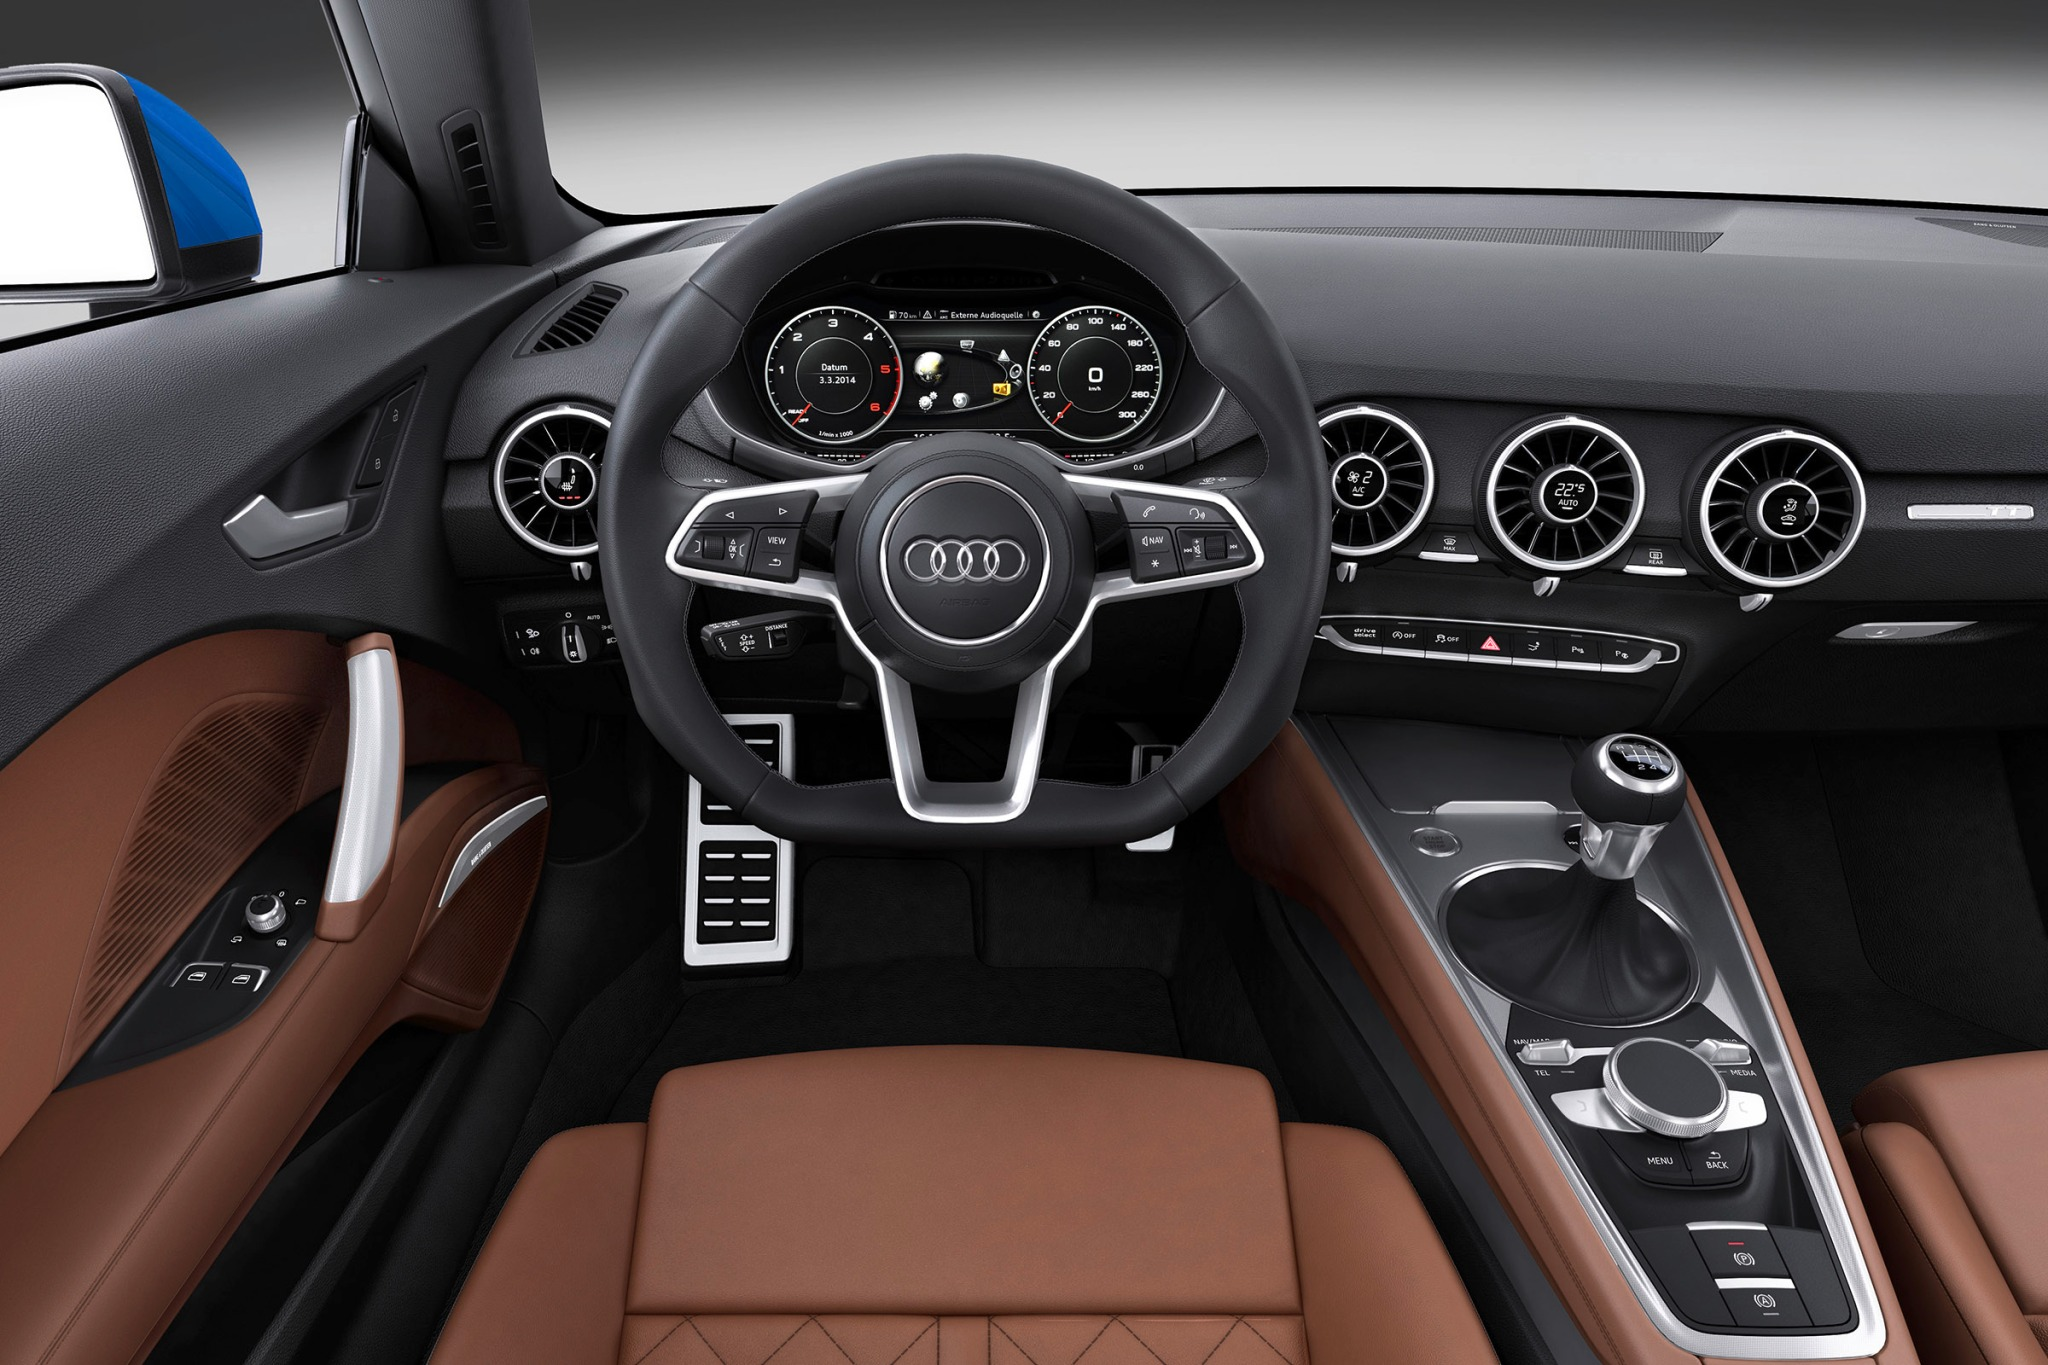 2016 Audi TT Coupe Steeri interior #5